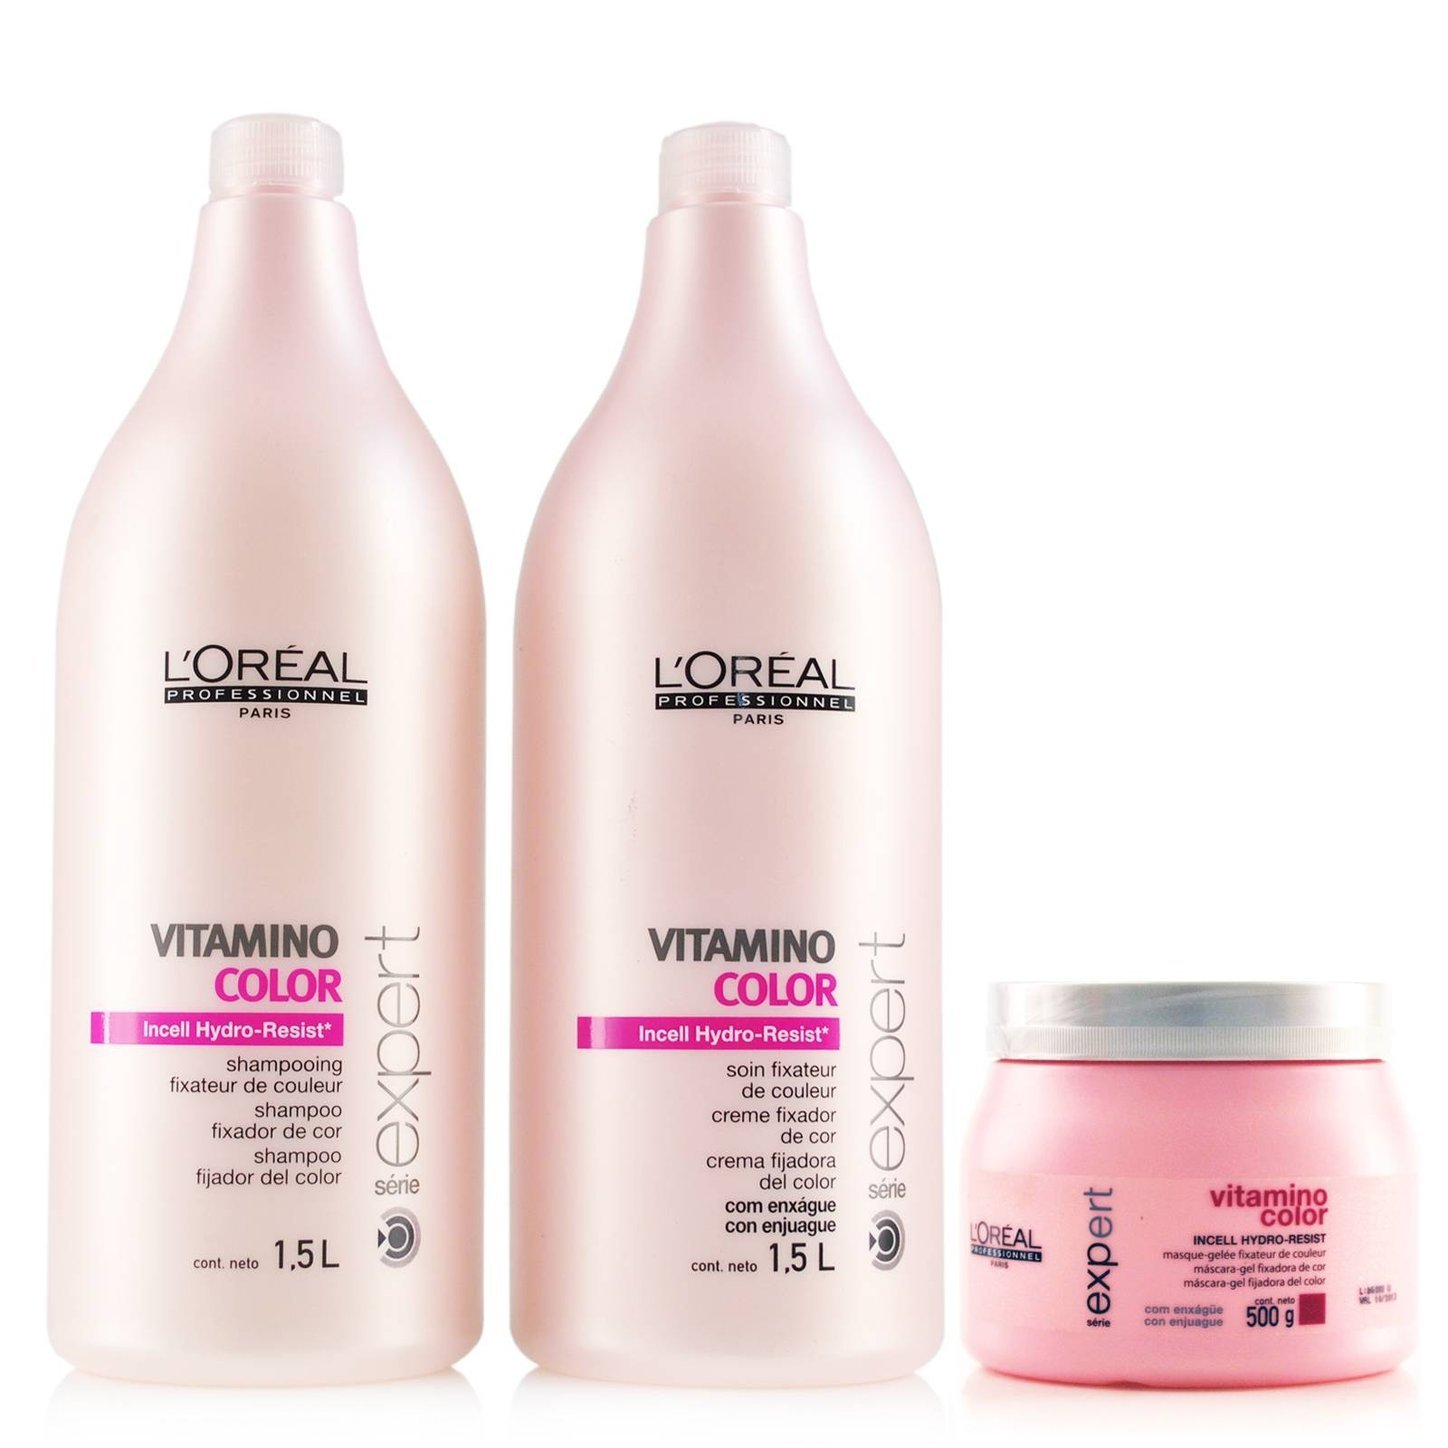 Kit L'Oreal Professionnel Vitamino Color - 1,5L (3 produtos)